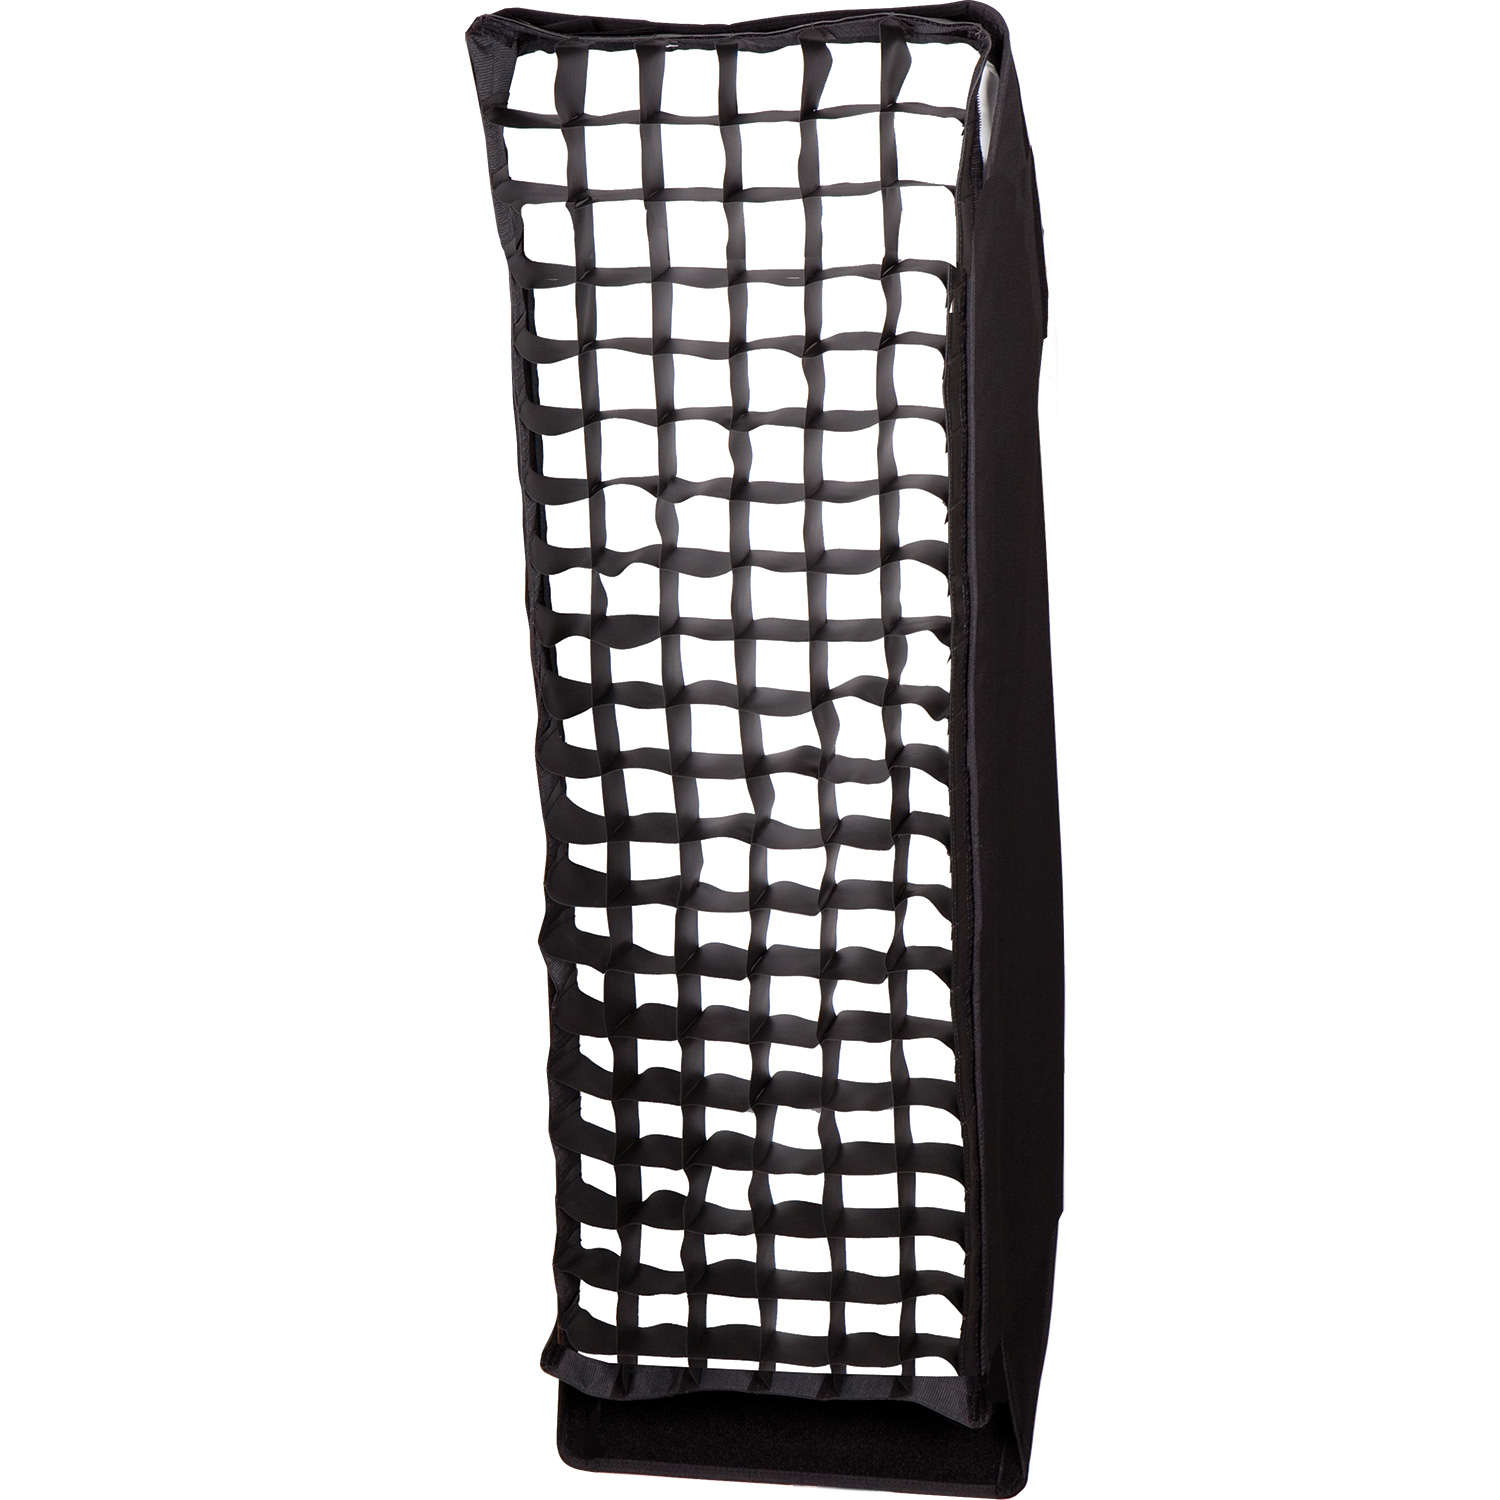 40° Egg Crate Grid for 12-in. x 36-in. Stripbank